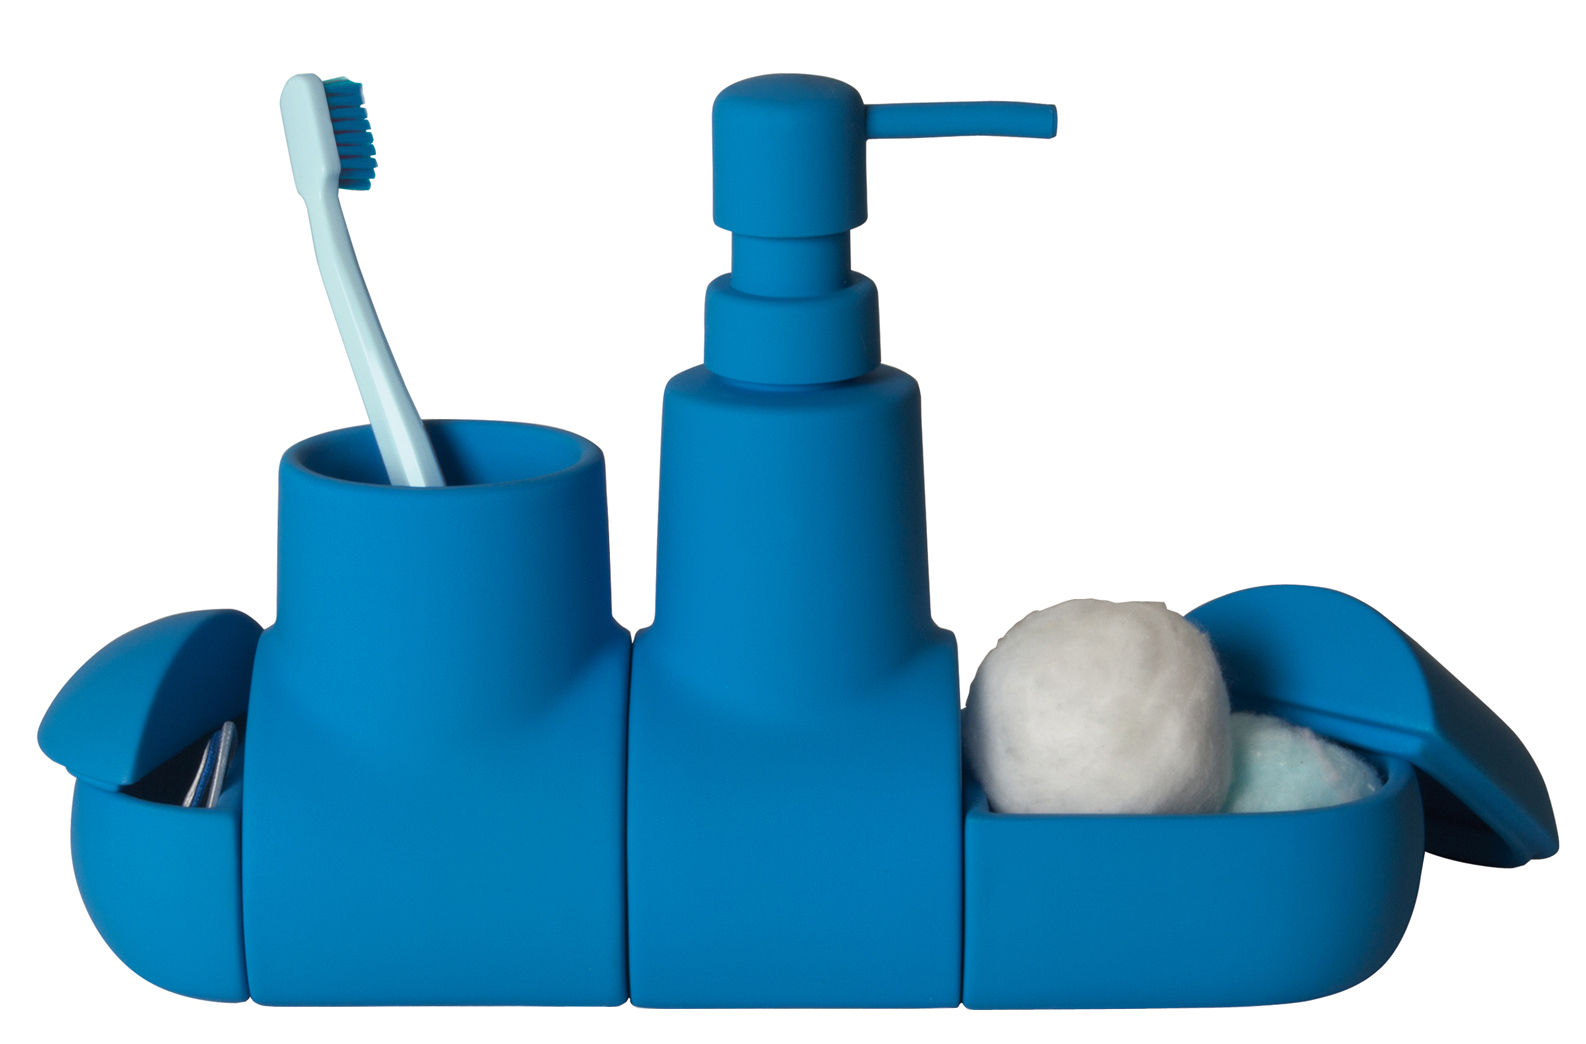 Submarine Accessories Set For Bathroom Blue By Seletti